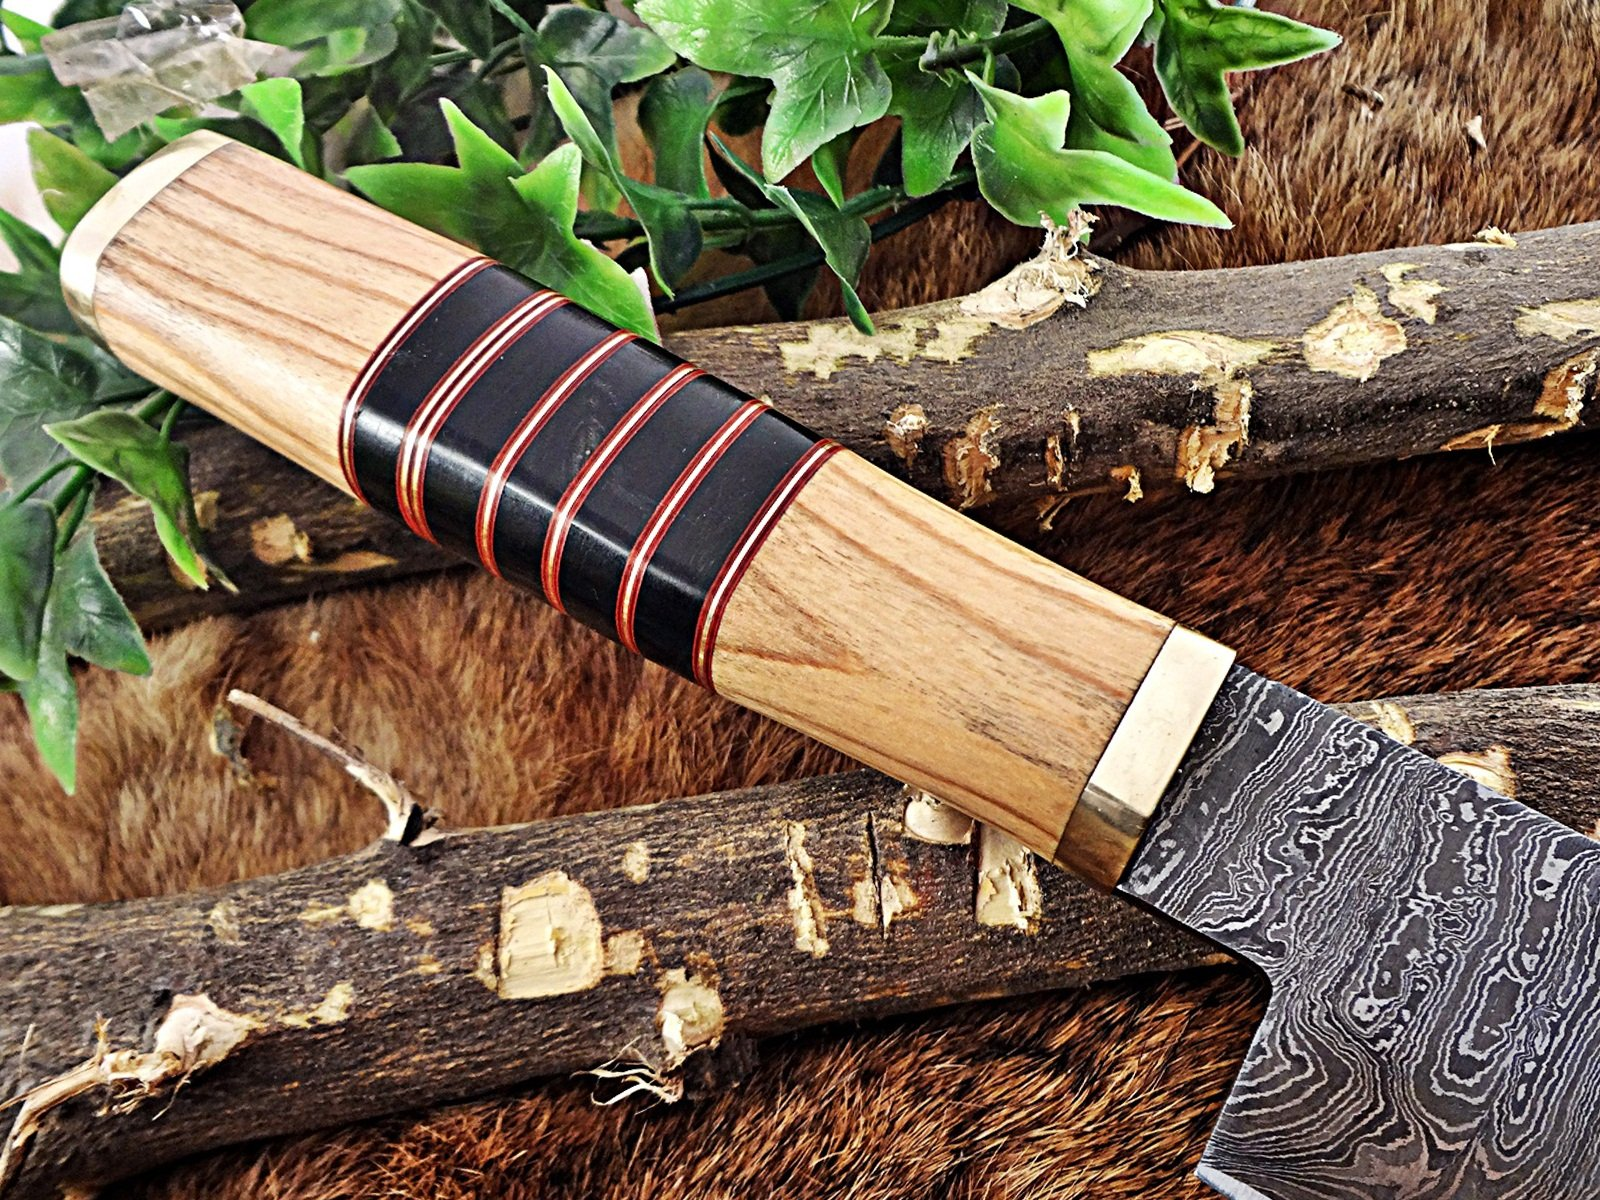 13.5 Inches long custom made Damascus steel chef Knife 8'' full tang blade Kow wood scale with brass spacer and bull horn round scale by Damascus Depot (Image #7)